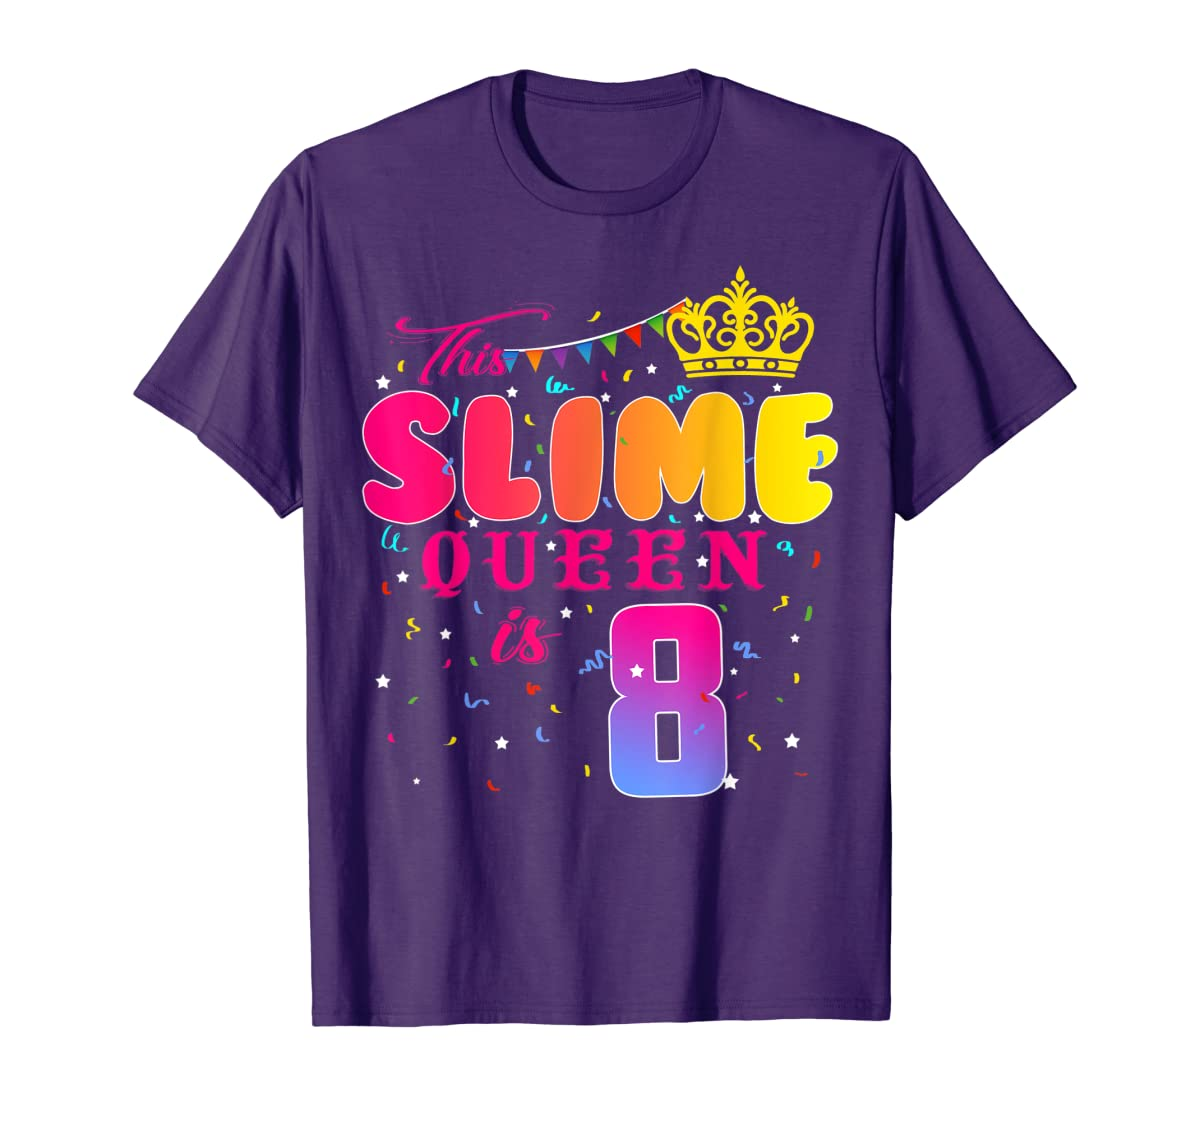 8 Years Old 8th Birthday Slime Queen Shirt Girl Gift Party-Men's T-Shirt-Purple